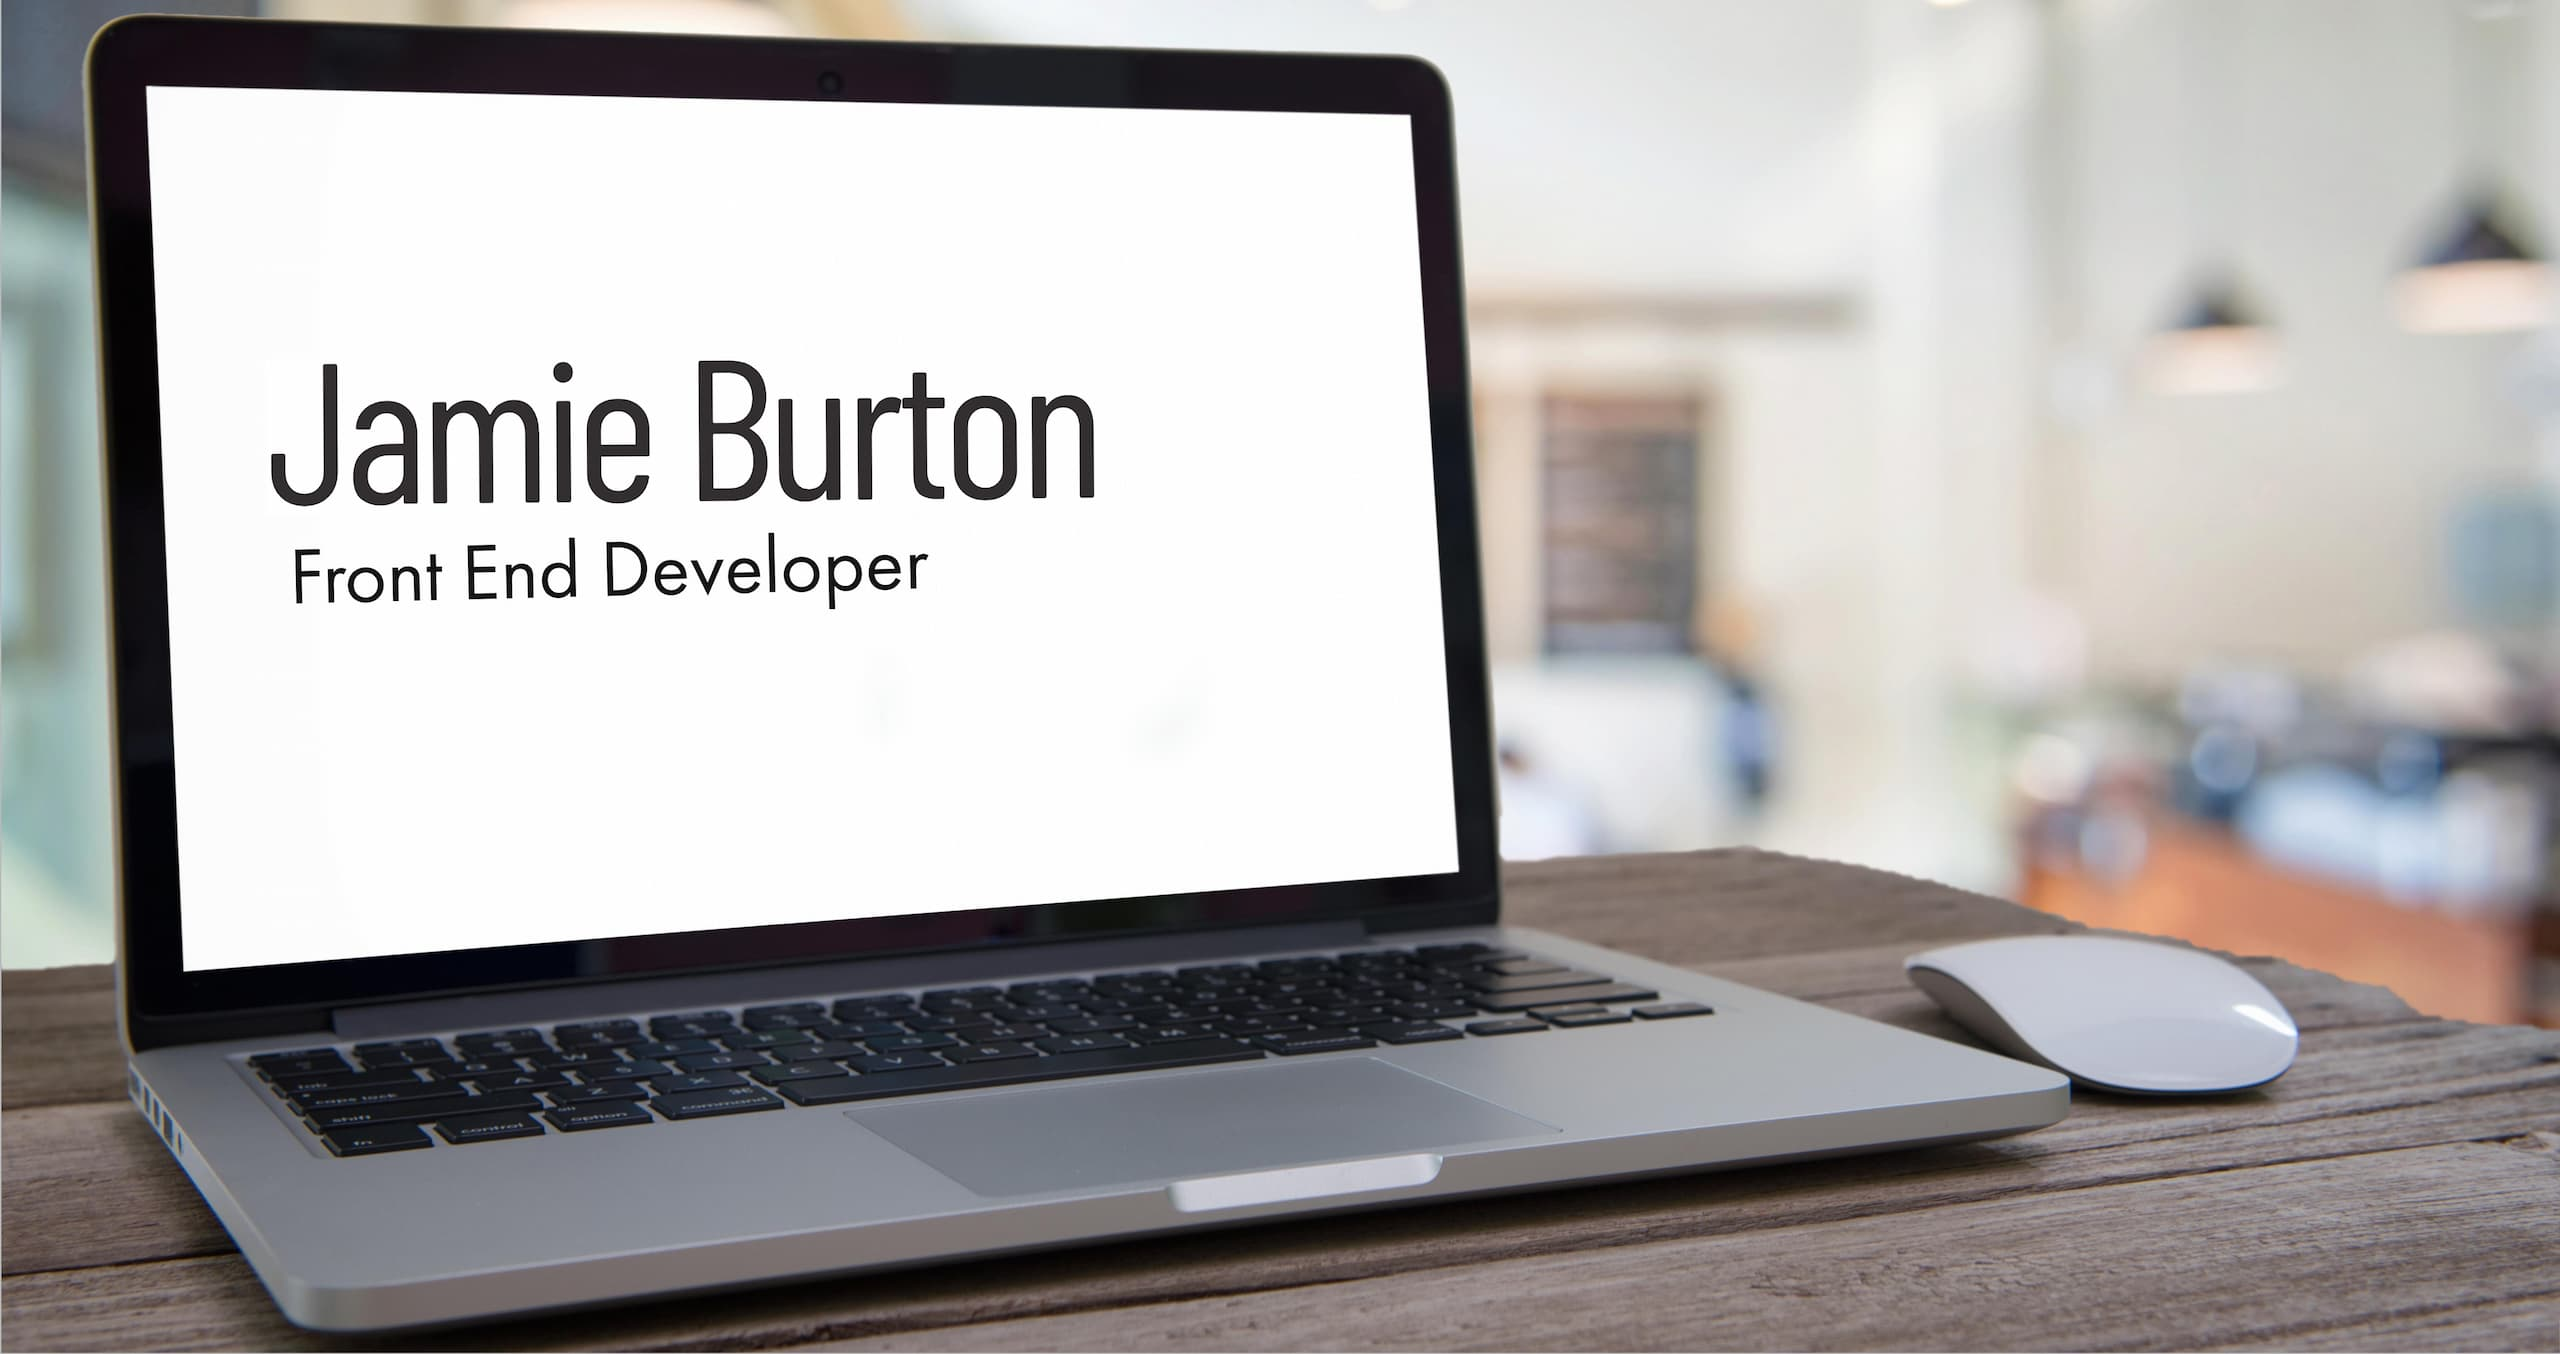 Jamie Burton, Front End Developer